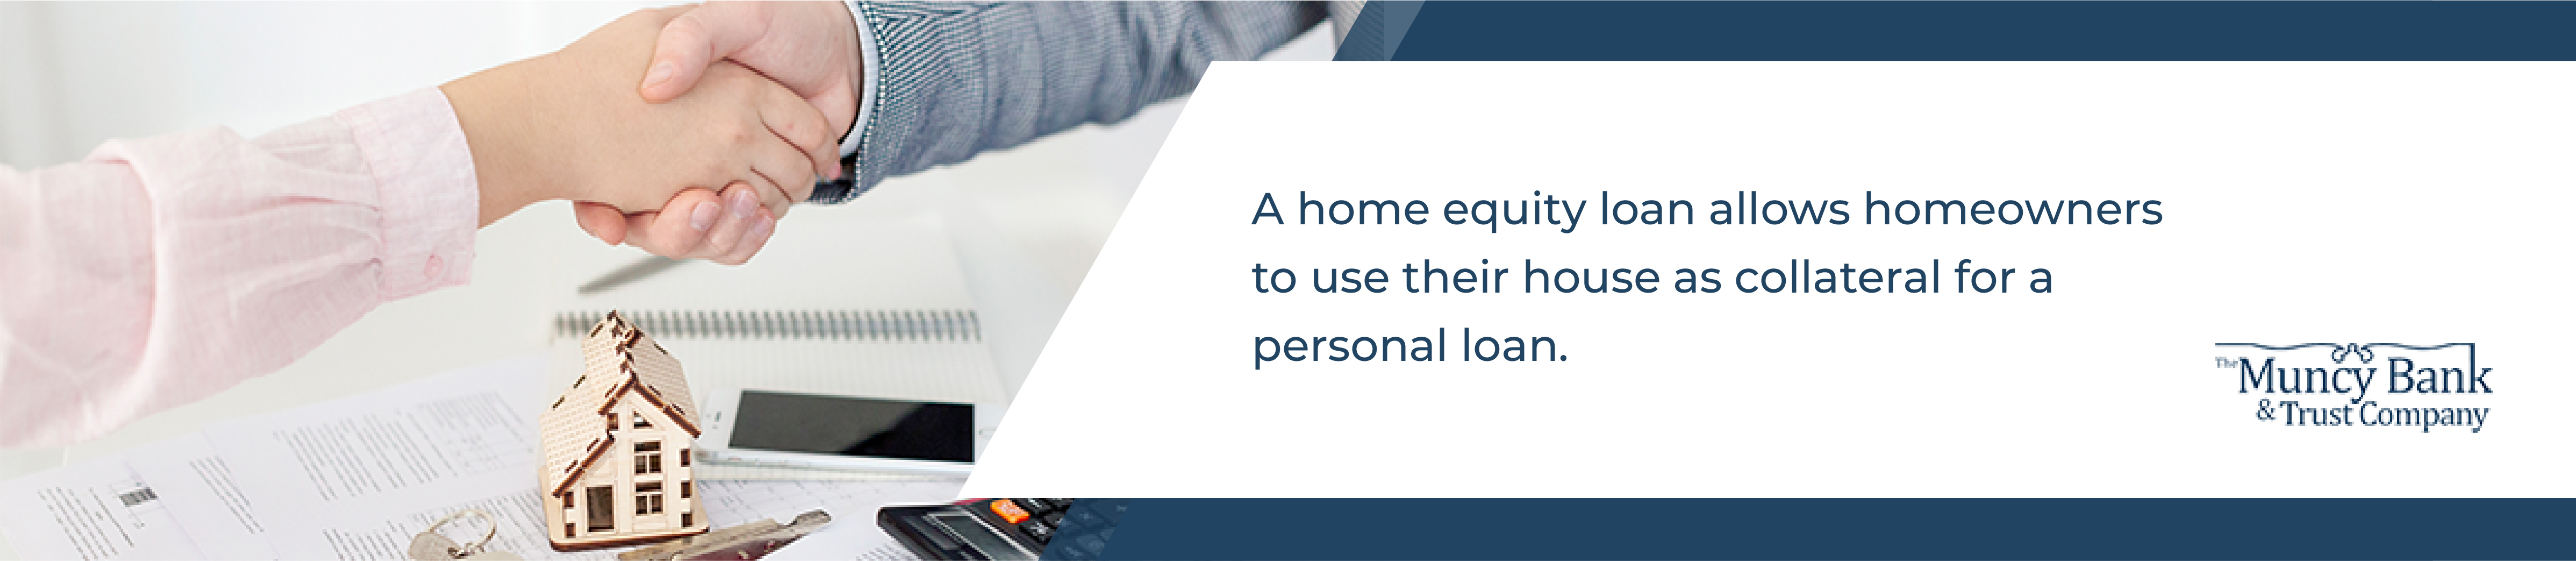 A home equity loan allows homeowners to use their house as collateral for a personal loan - image of a person shaking hands with a lender